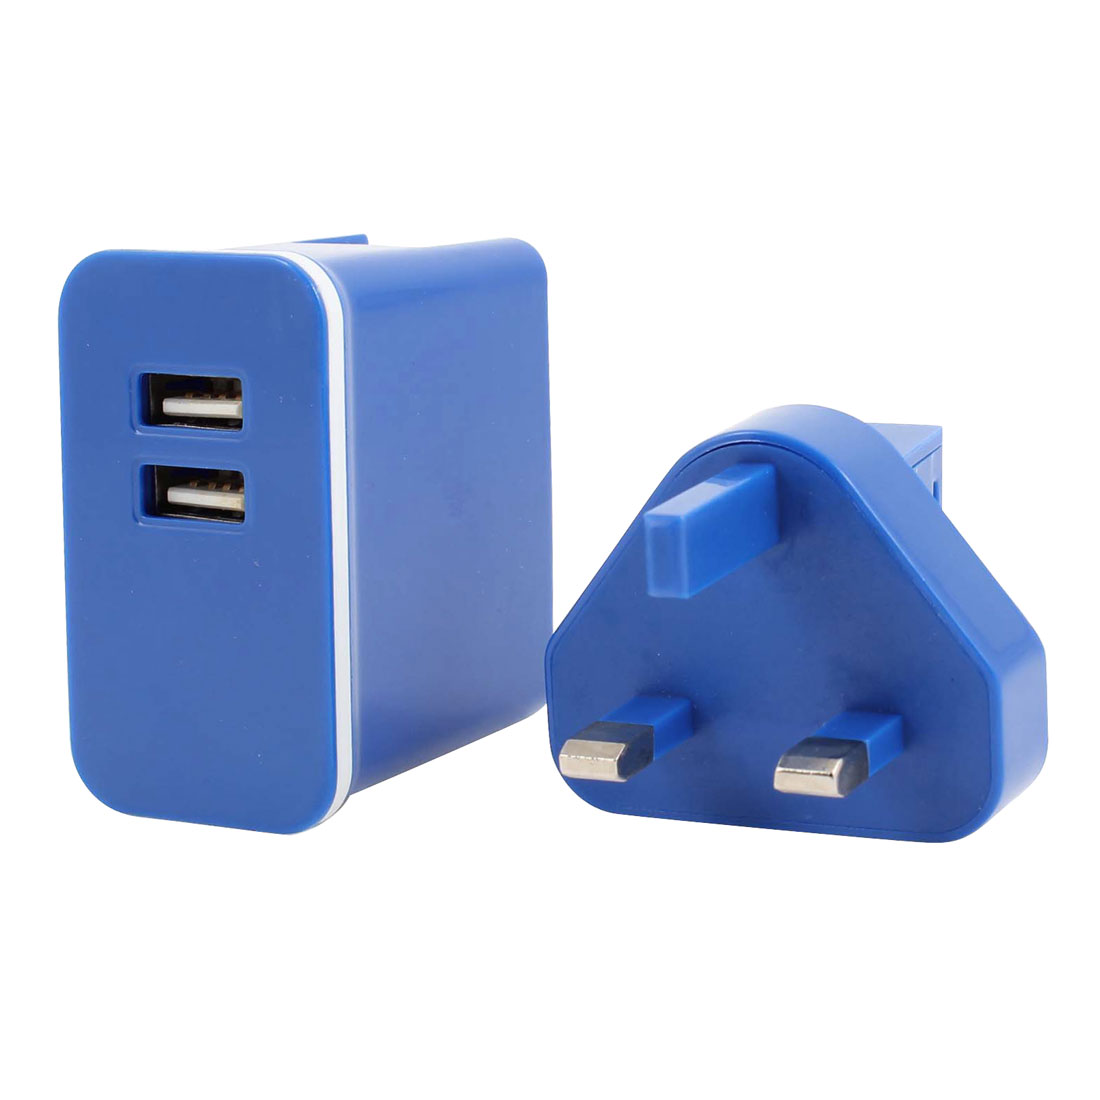 UK Plug Two USB 2.0 Ports AC100-240V Power Adapter Wall Travel Charger Blue